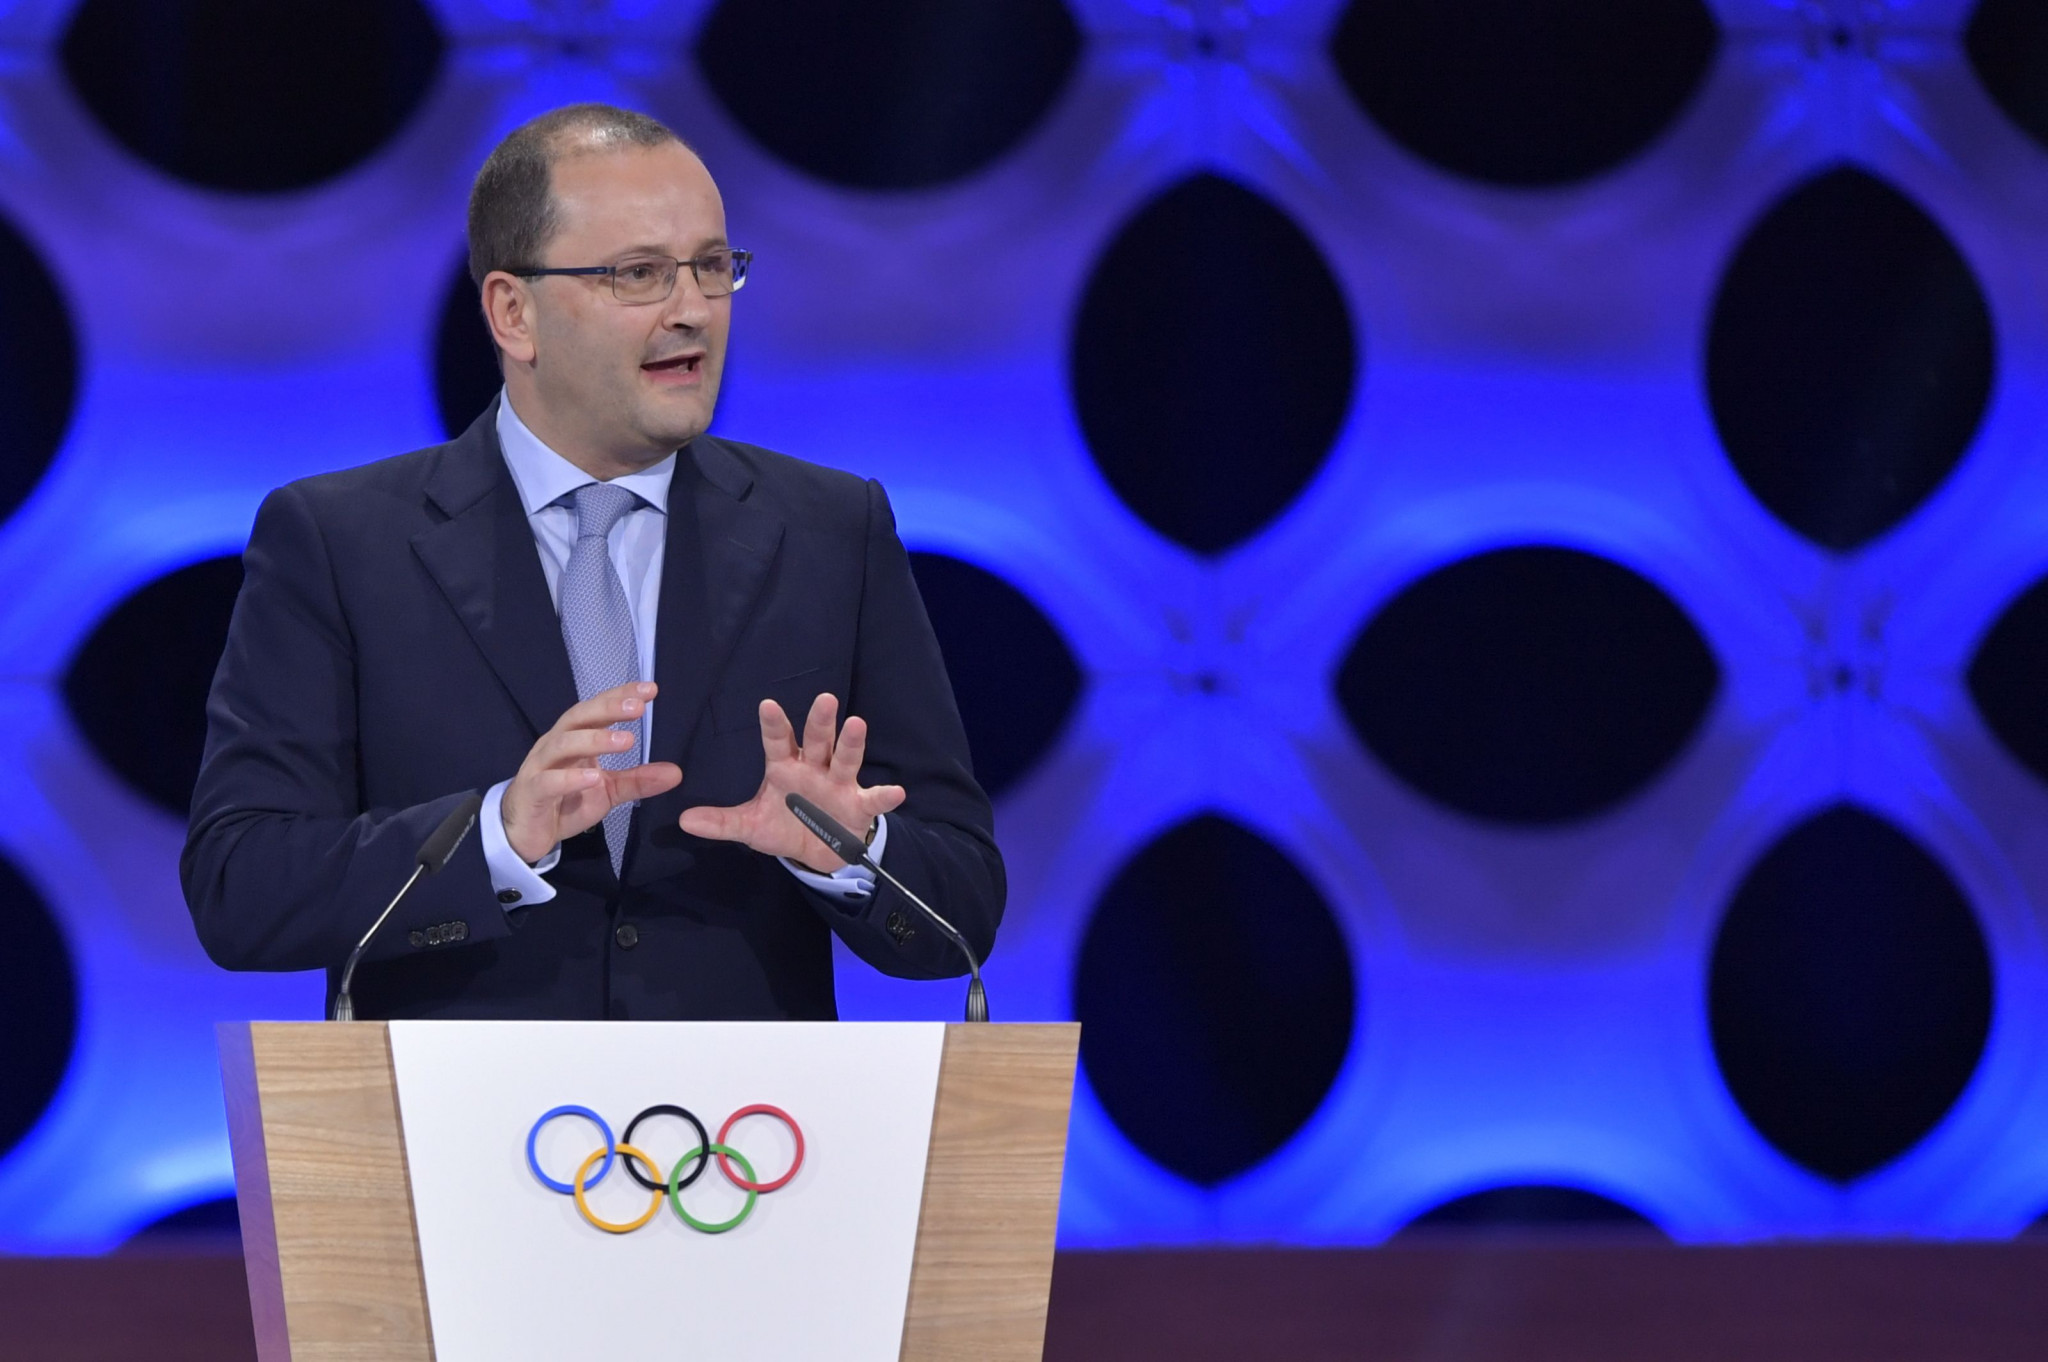 Patrick Baumann could reportedly be named vice-chair of the IOC Coordination Commission for Paris 2024 and Los Angeles 2028 having led the Evaluation Commission after replacing Frankie Fredericks ©Getty Images